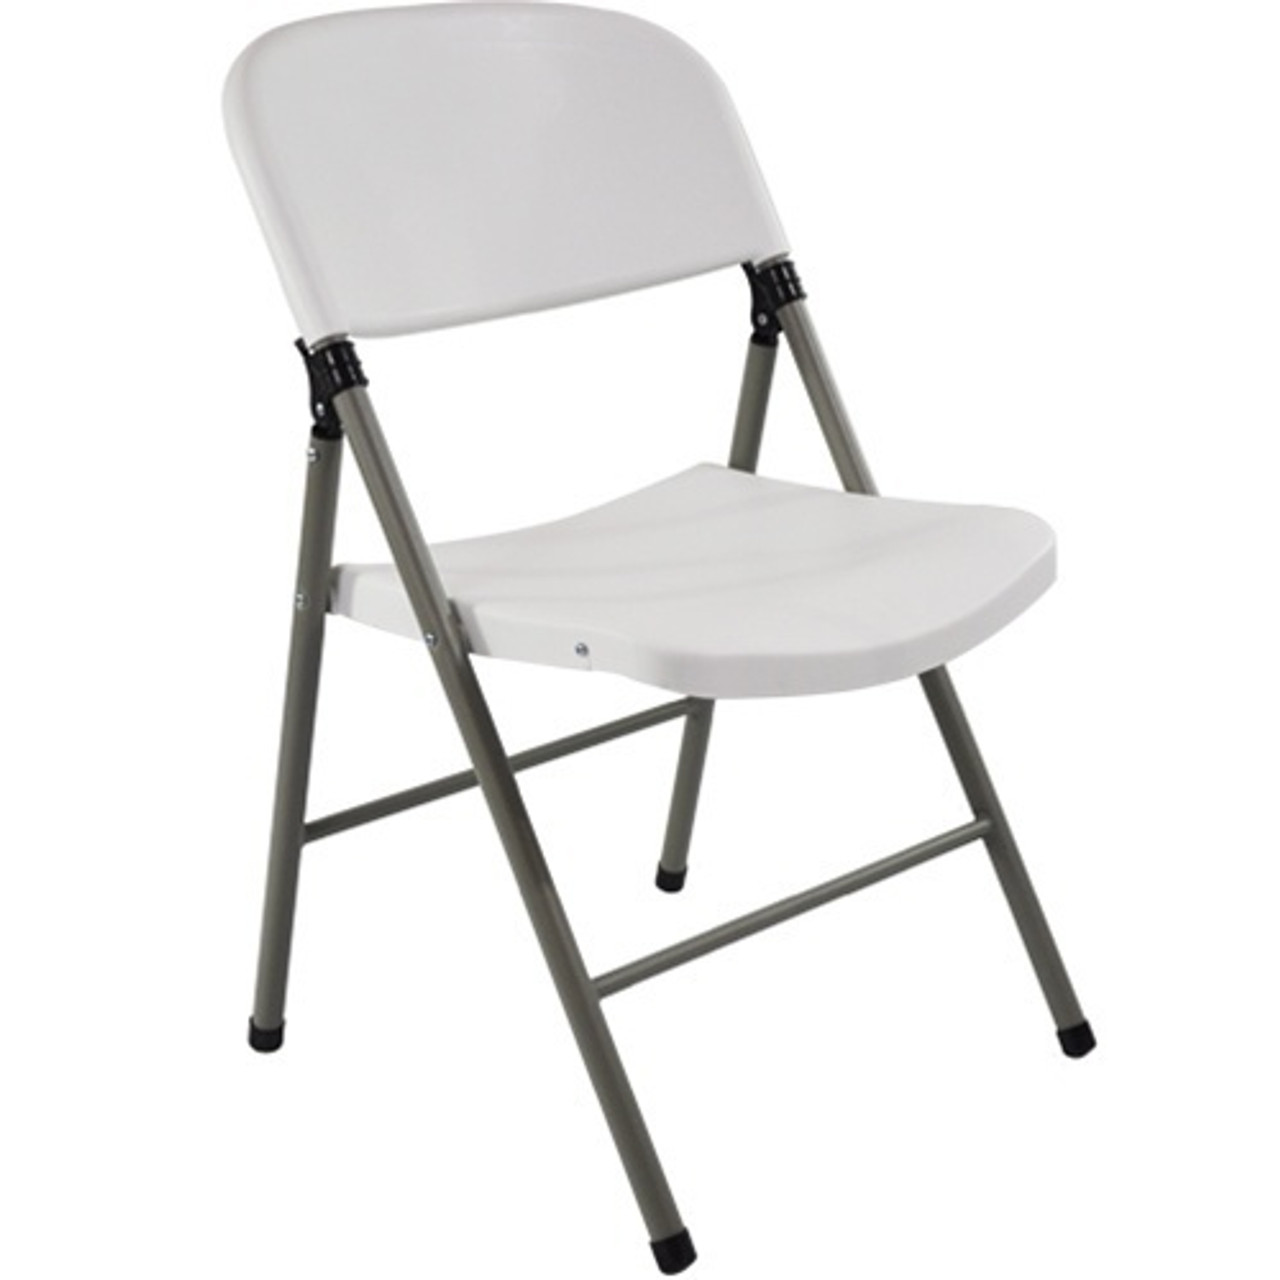 Tremendous Advantage White Poly Folding Chair Oversized With Gray Frame Dad Ycd 70 Wh Gg Caraccident5 Cool Chair Designs And Ideas Caraccident5Info